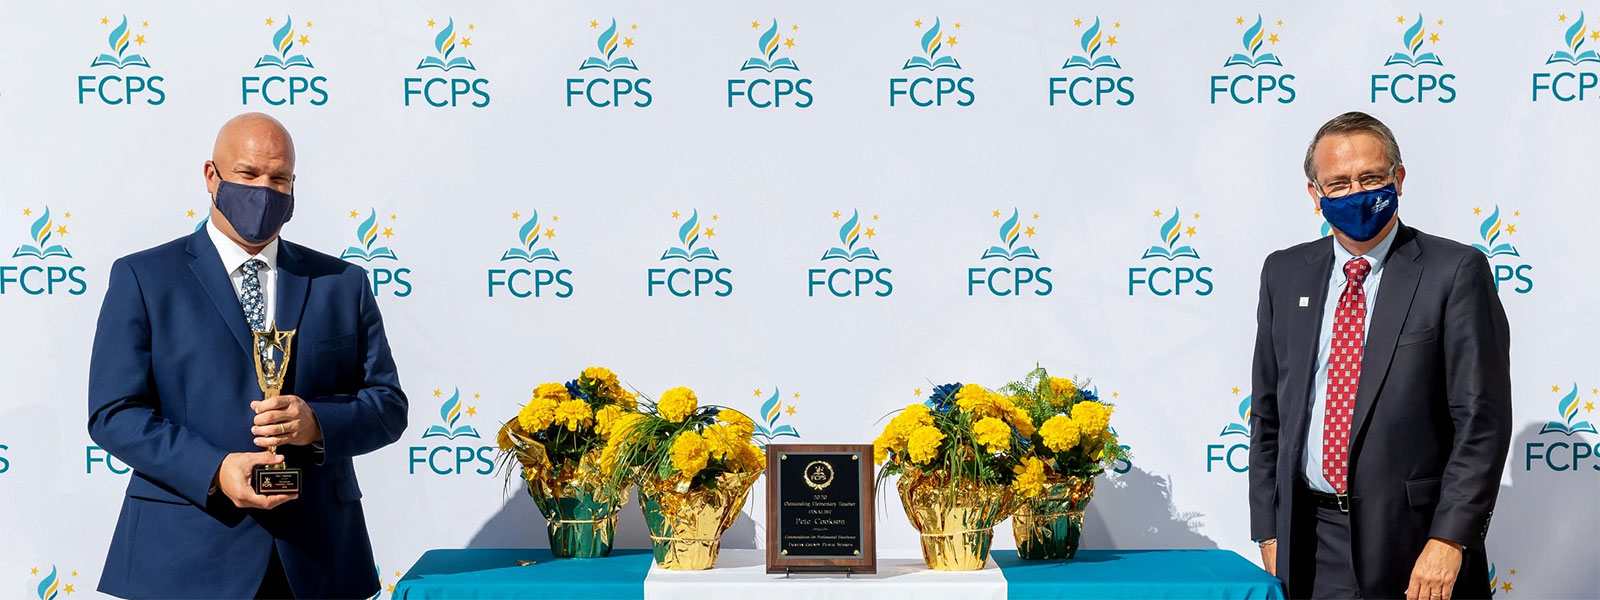 mr pete cookson at fcps honors